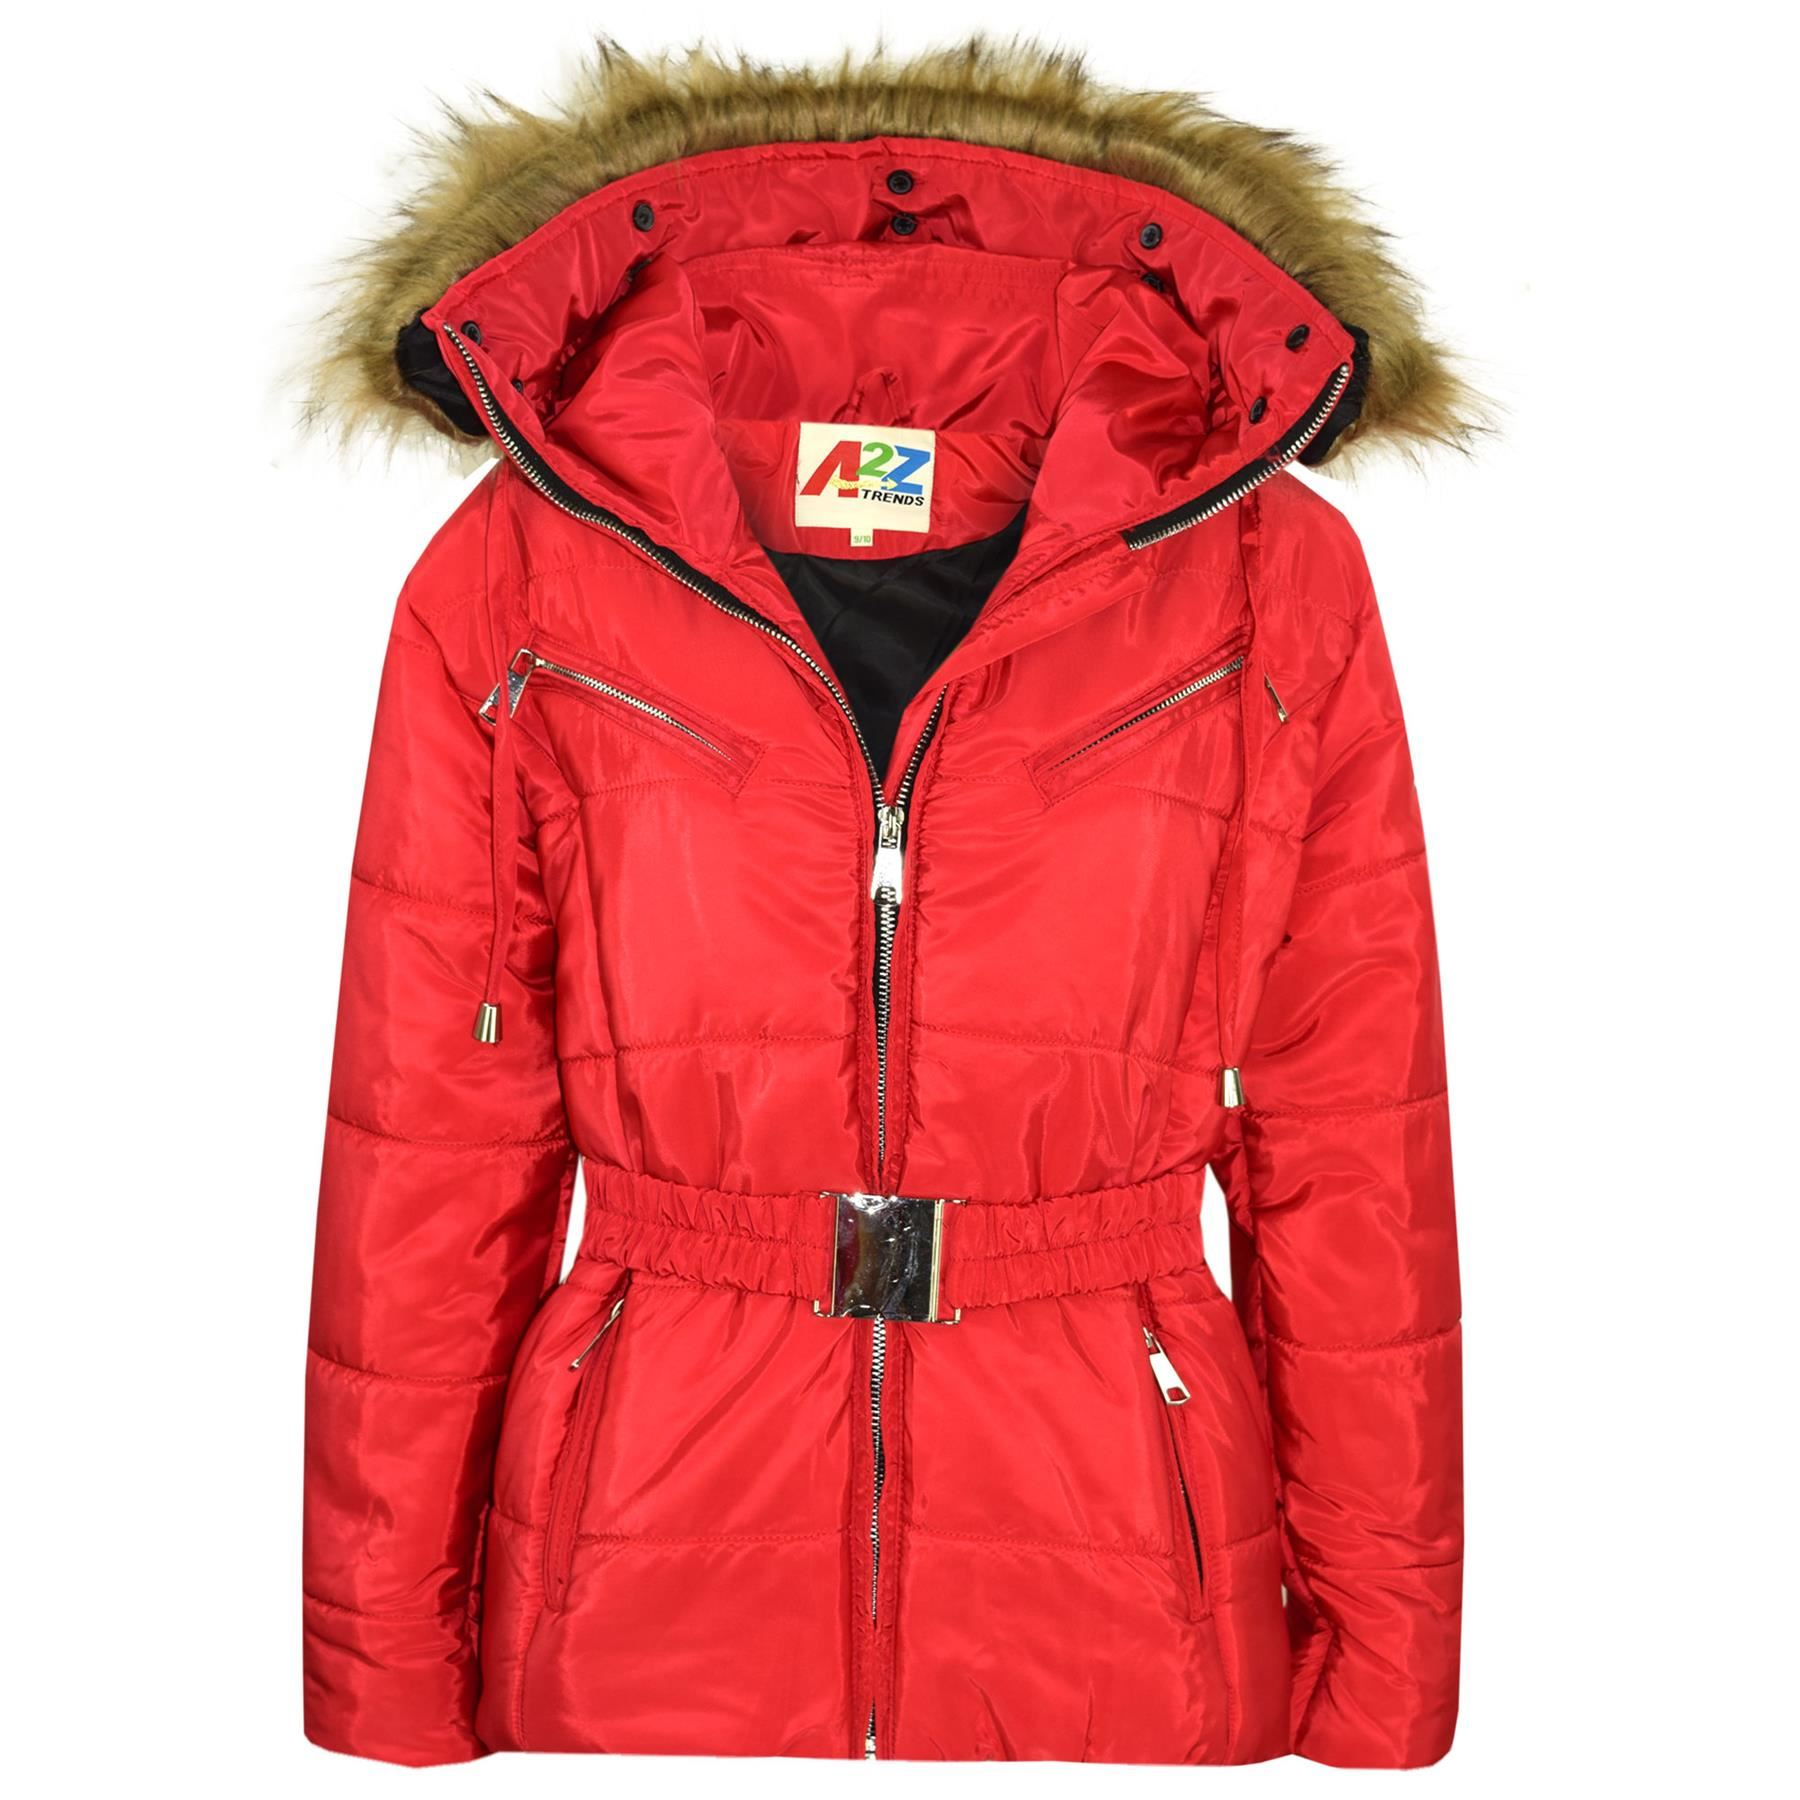 Kids Girls Jacket Puffer Hooded Faux Fur Red Padded Zipped Belted Top Warm Coats